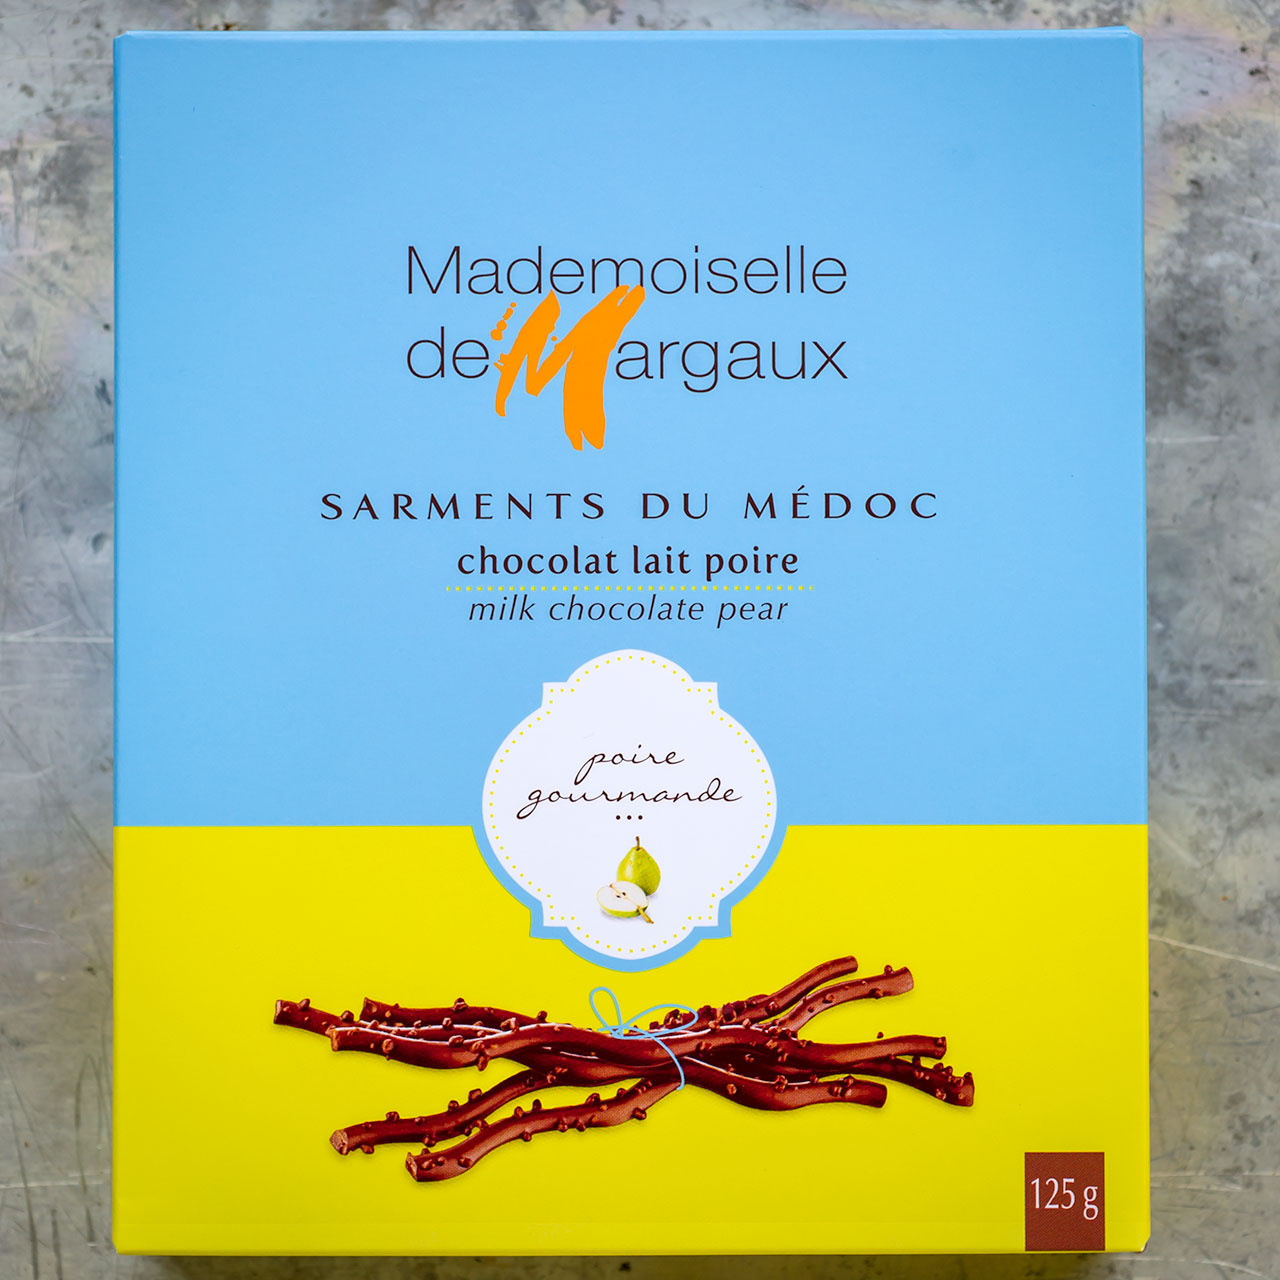 Milk Chocolate Twigs with Pear - Mademoiselle de Margaux